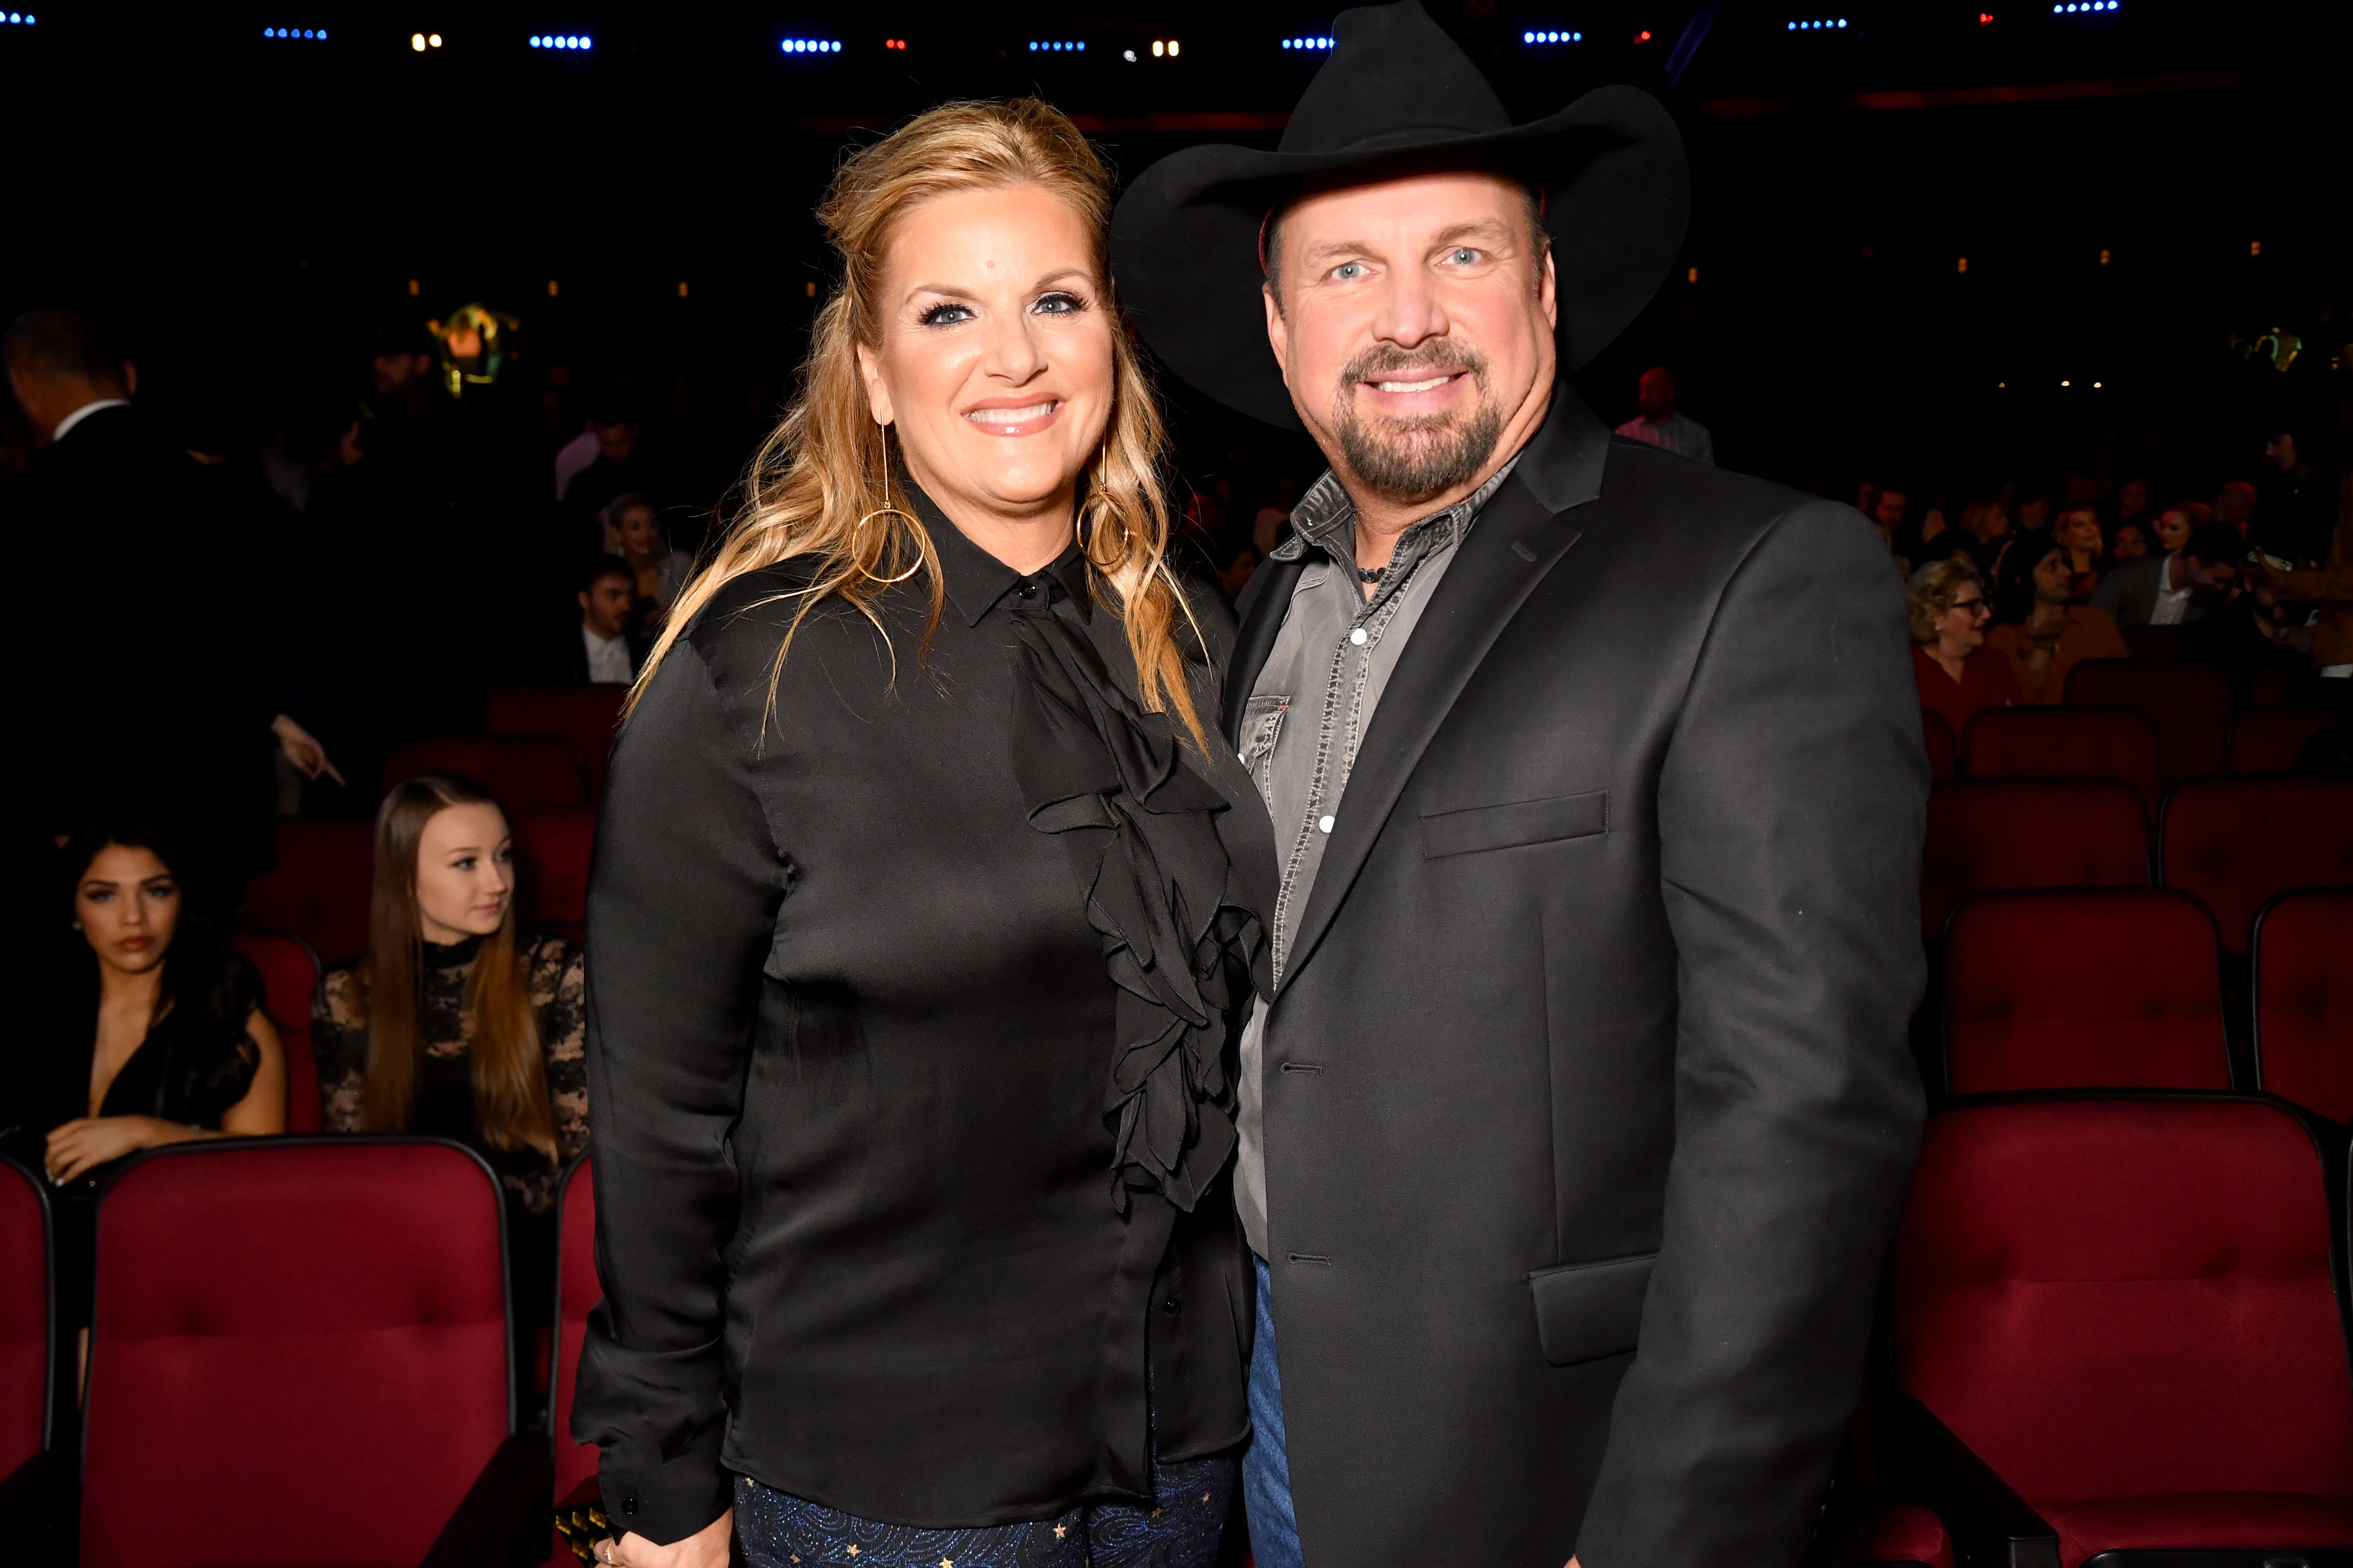 Trisha Yearwood Reveals That Husband Garth Brooks Was in NYC on 9/11